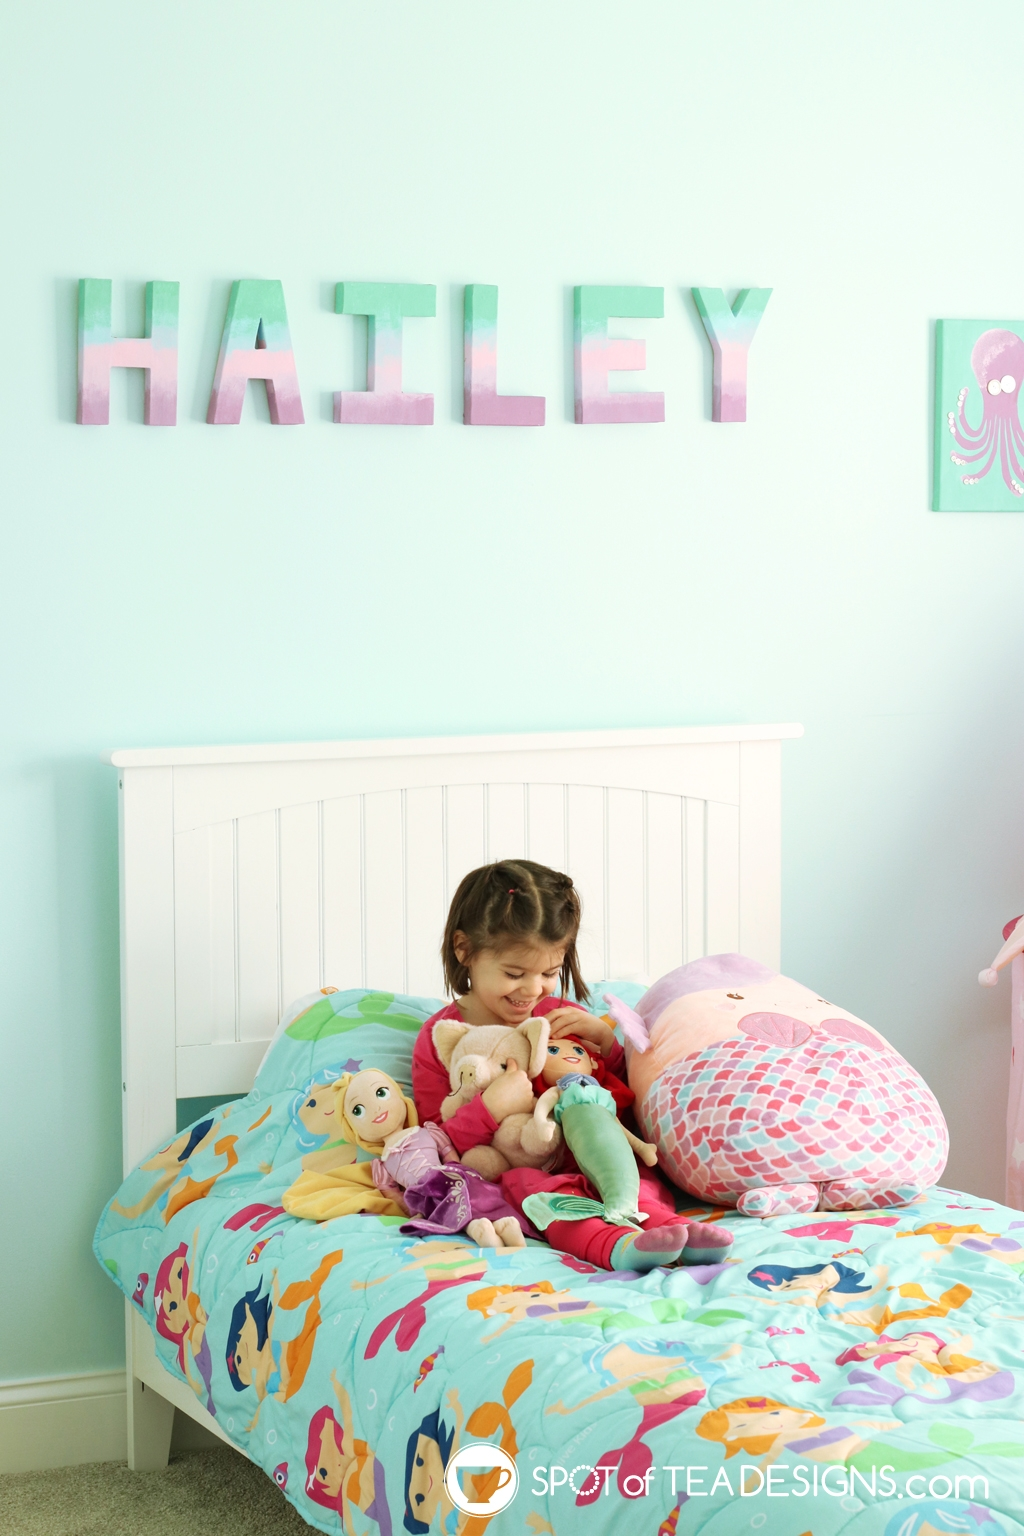 Home Tour - Preschooler's Mermaid Bedroom - mermaid blanket | spotofteadesigns.com